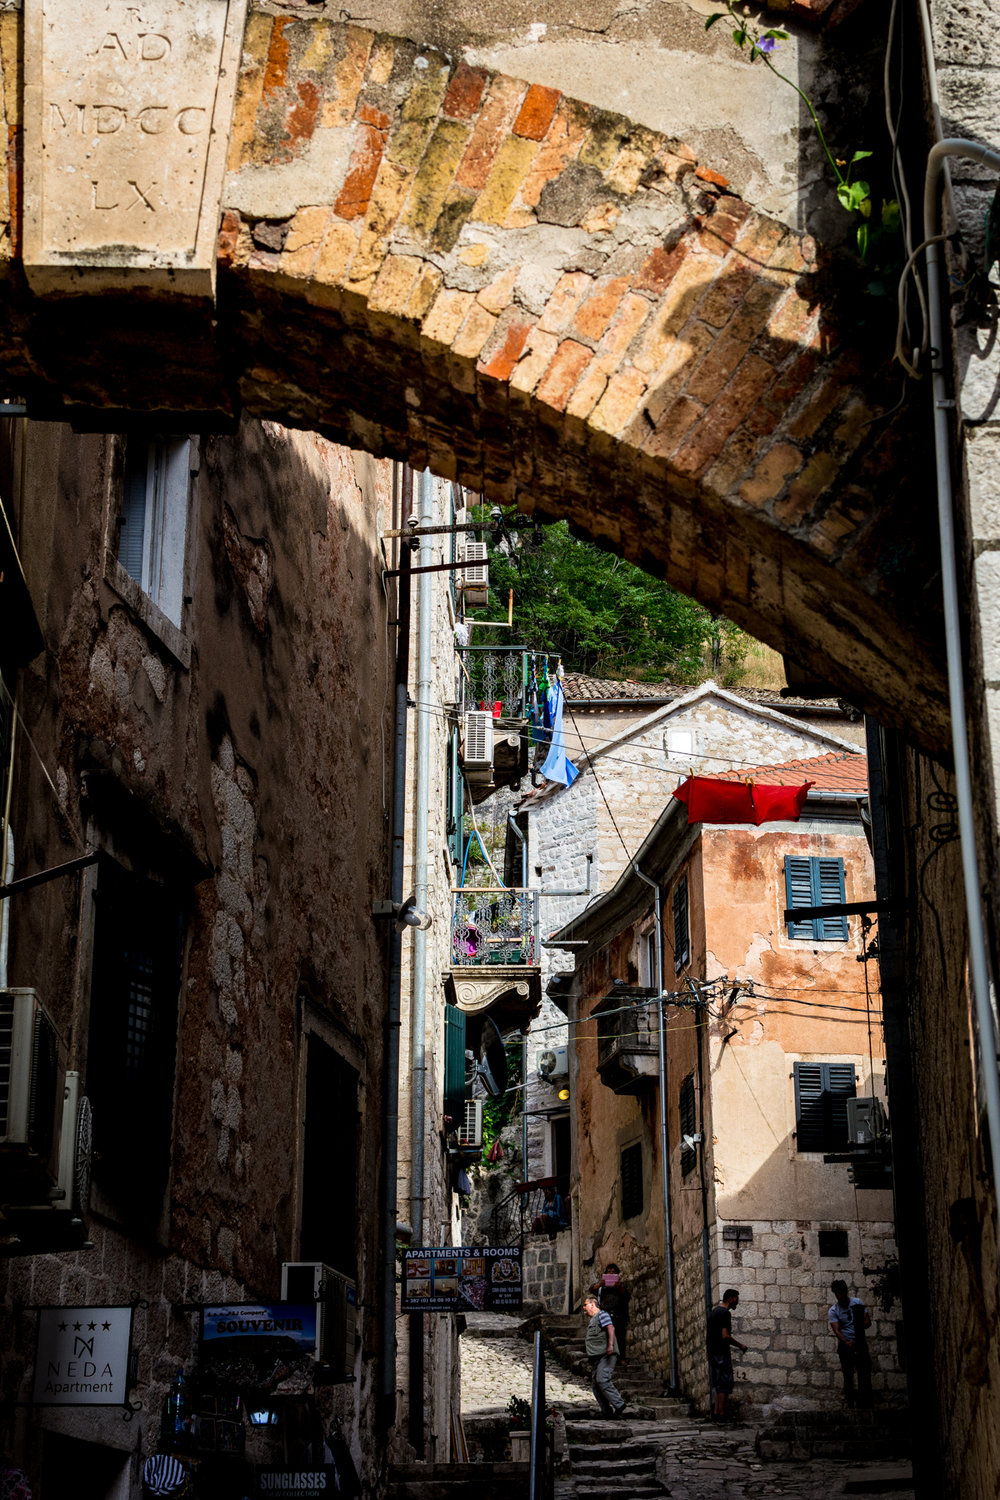 Venetian-style buildings and narrow streets in Kotor.